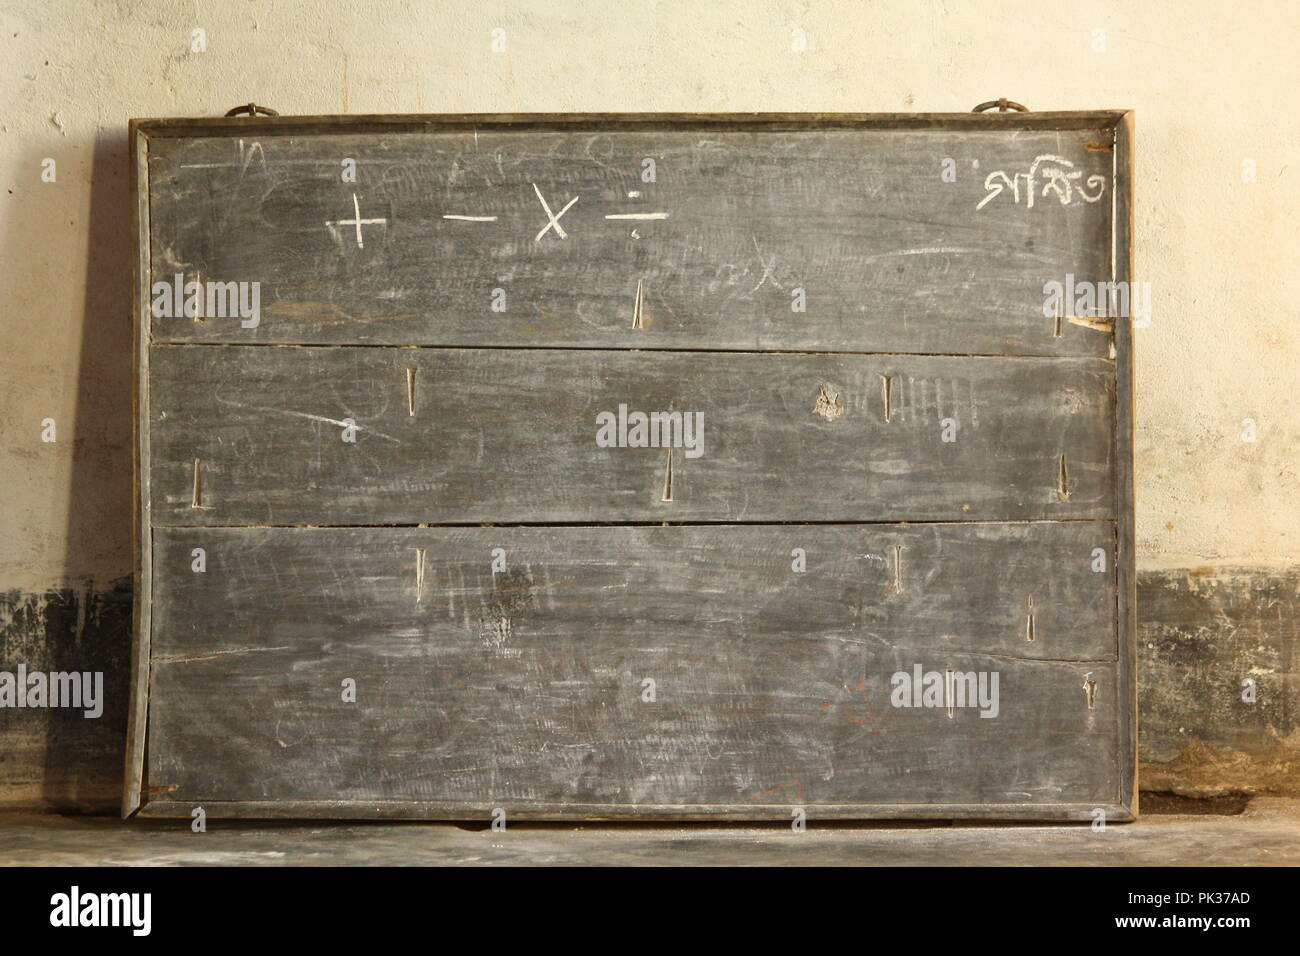 Old blackboard in a developing country standing on the floor of a rural school building. - Stock Image